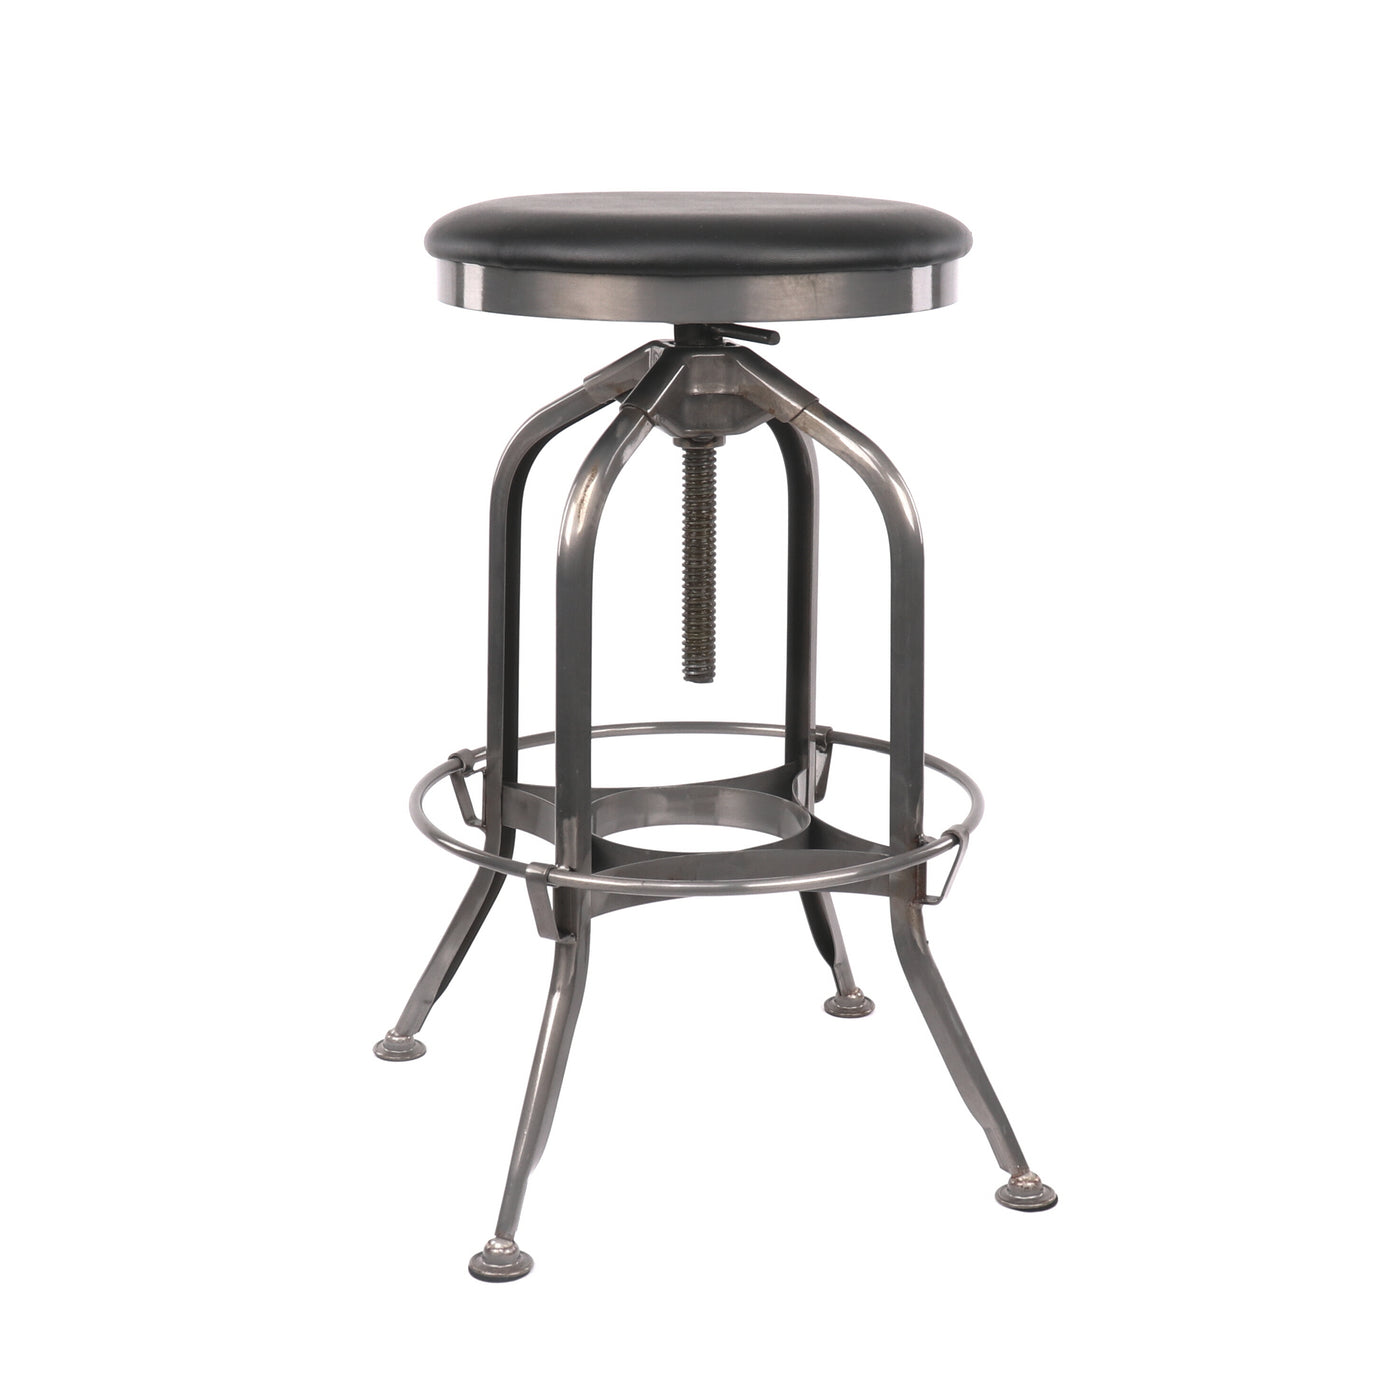 Design Lab MN LS-9200-GUNBLK Toledo Black Gunmetal Adjustable Barstool